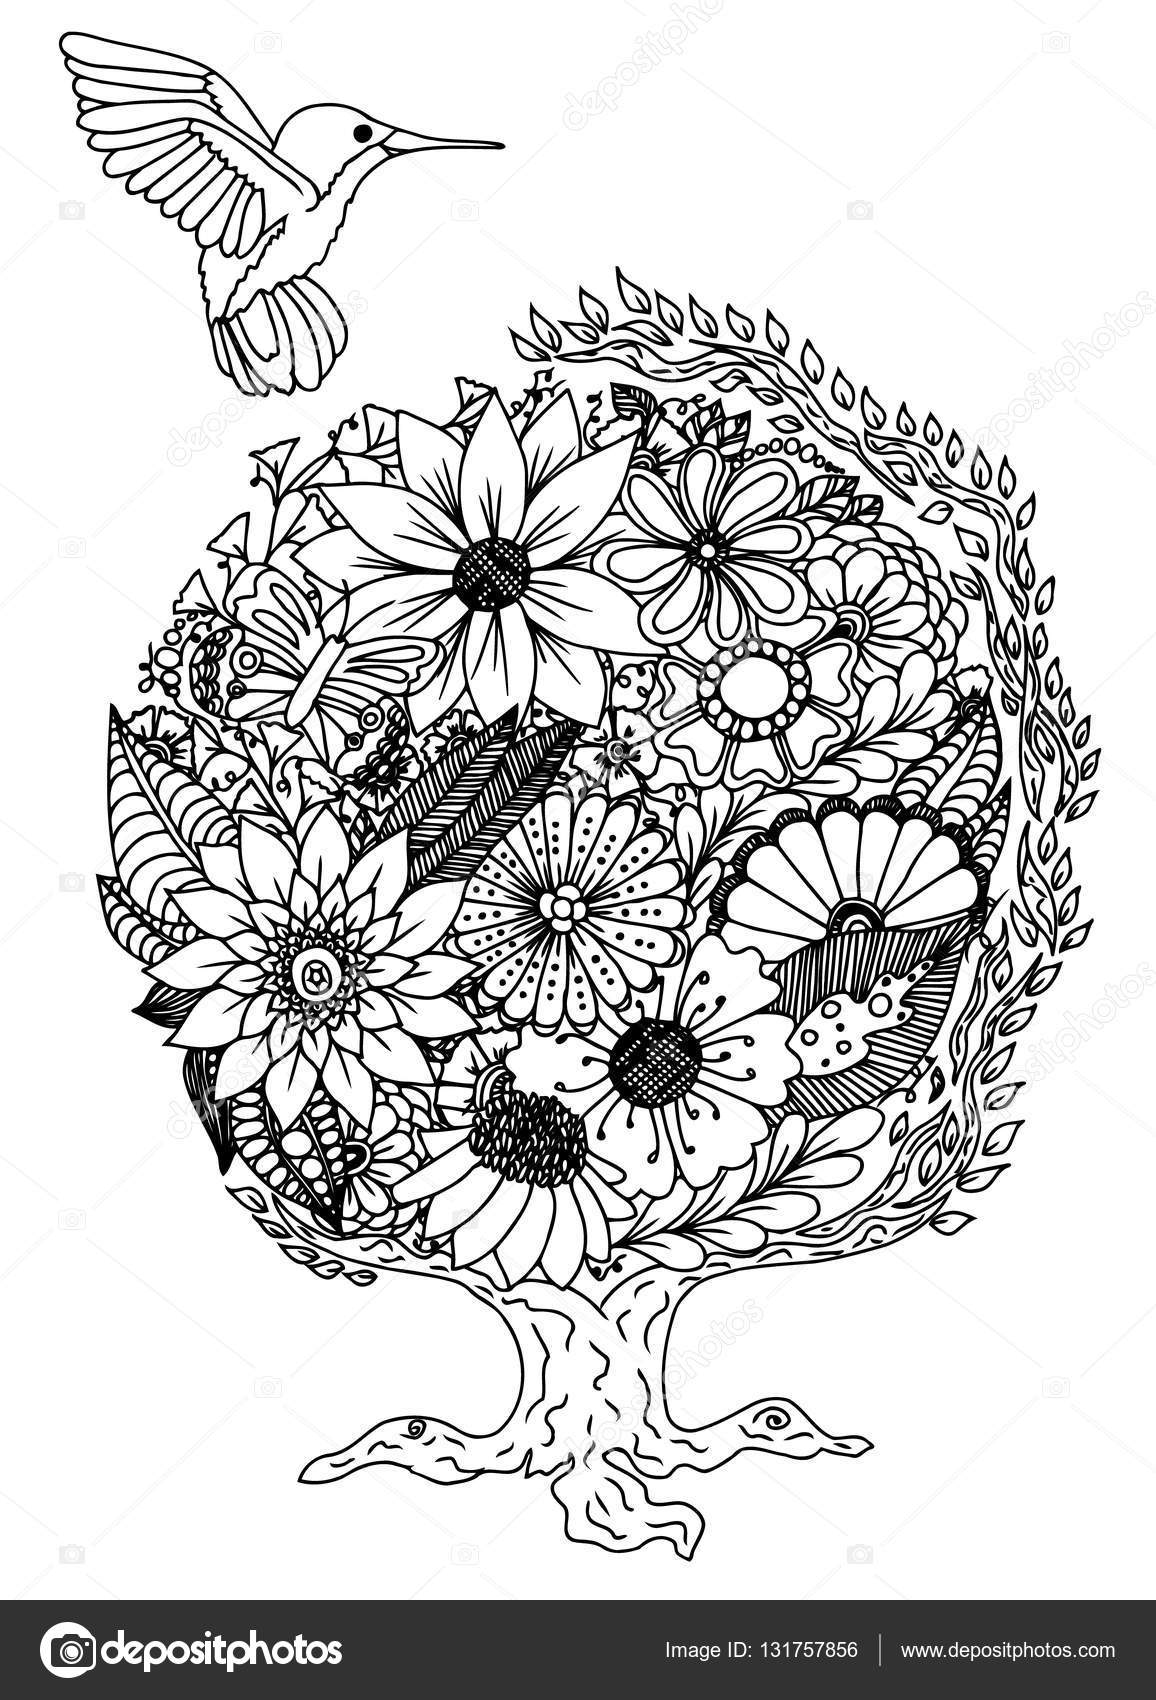 Colibri Flowers Vector Illustration Doodle Drawing Meditative Exercise Coloring Book Anti Stress For Adults Blakc And White By Maryafro